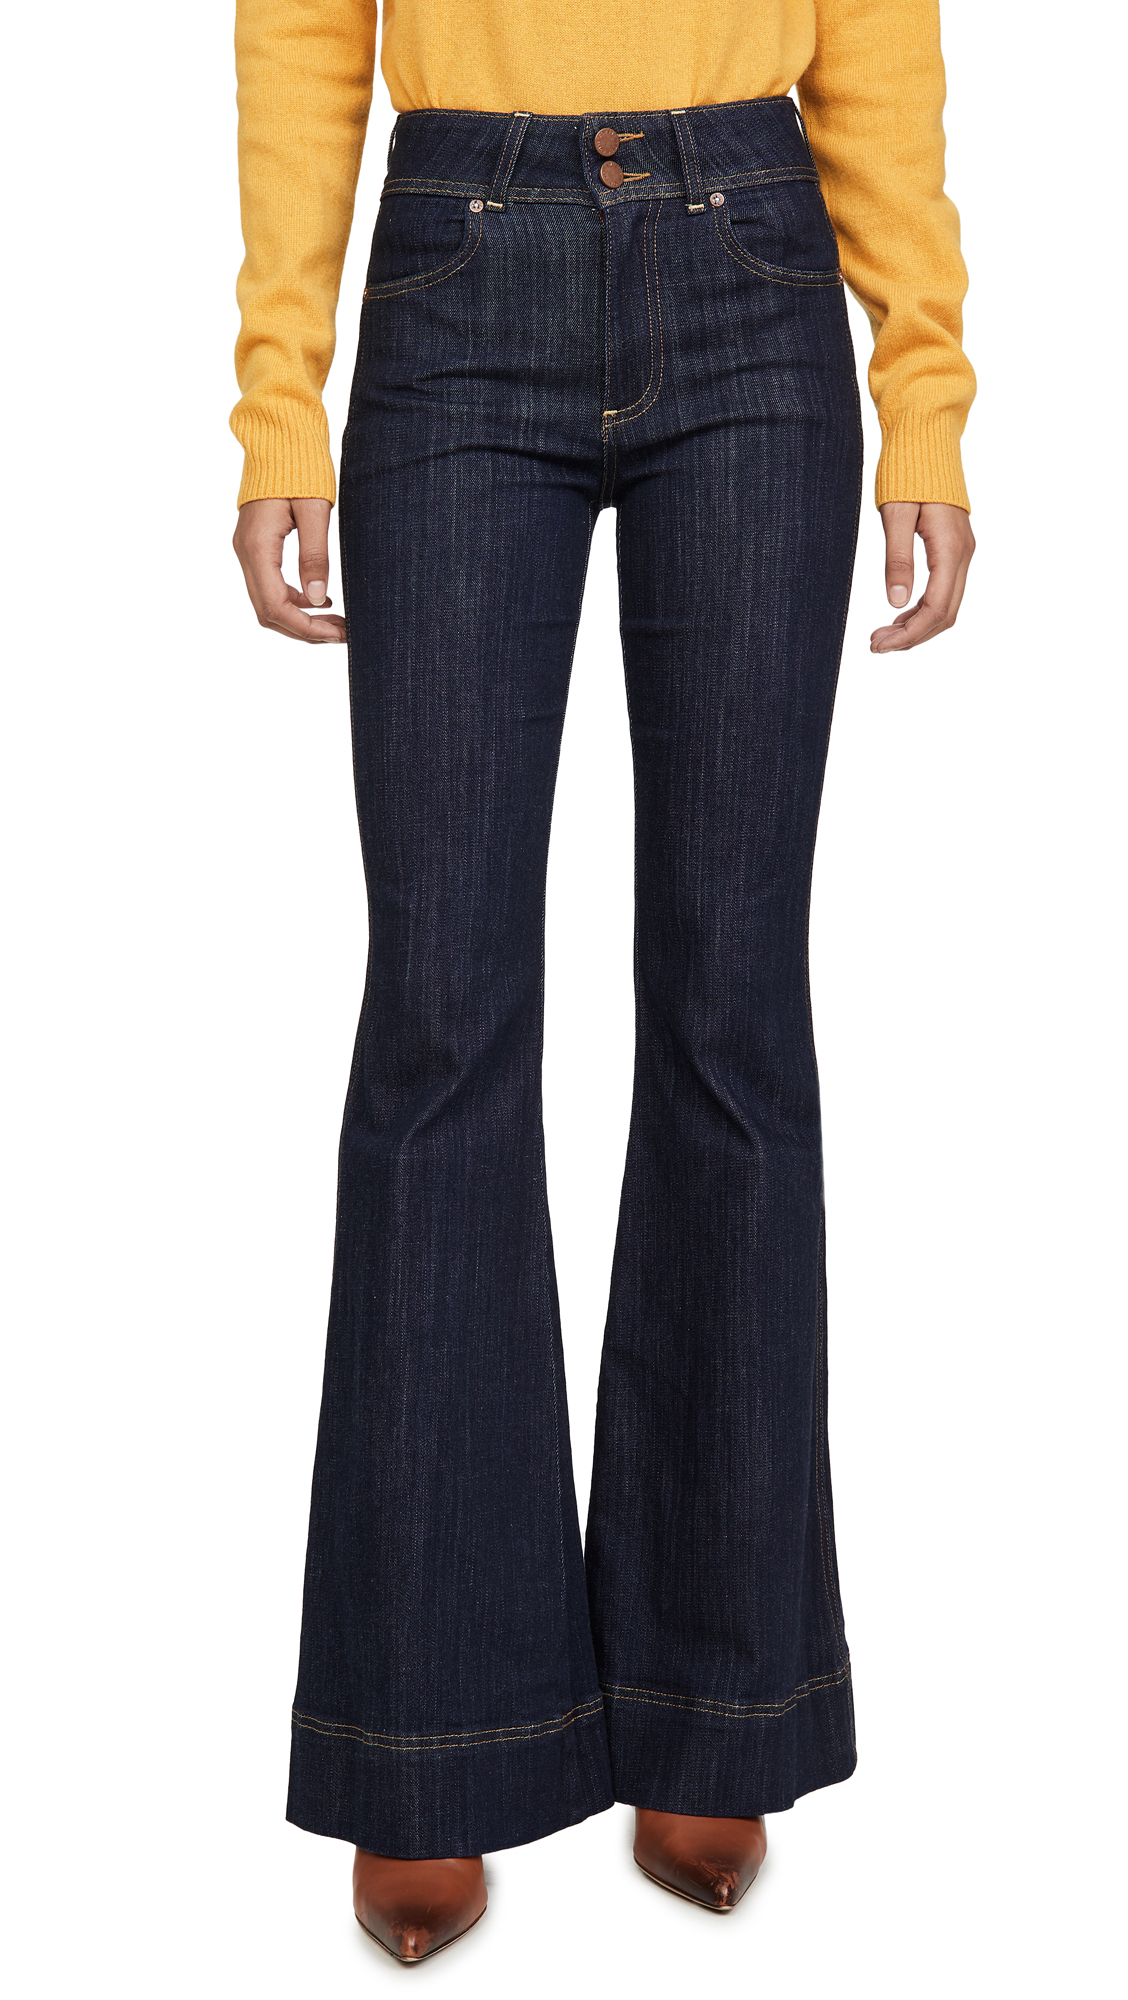 Buy ALICE + OLIVIA JEANS online - photo of ALICE + OLIVIA JEANS Beautiful High Rise Jeans